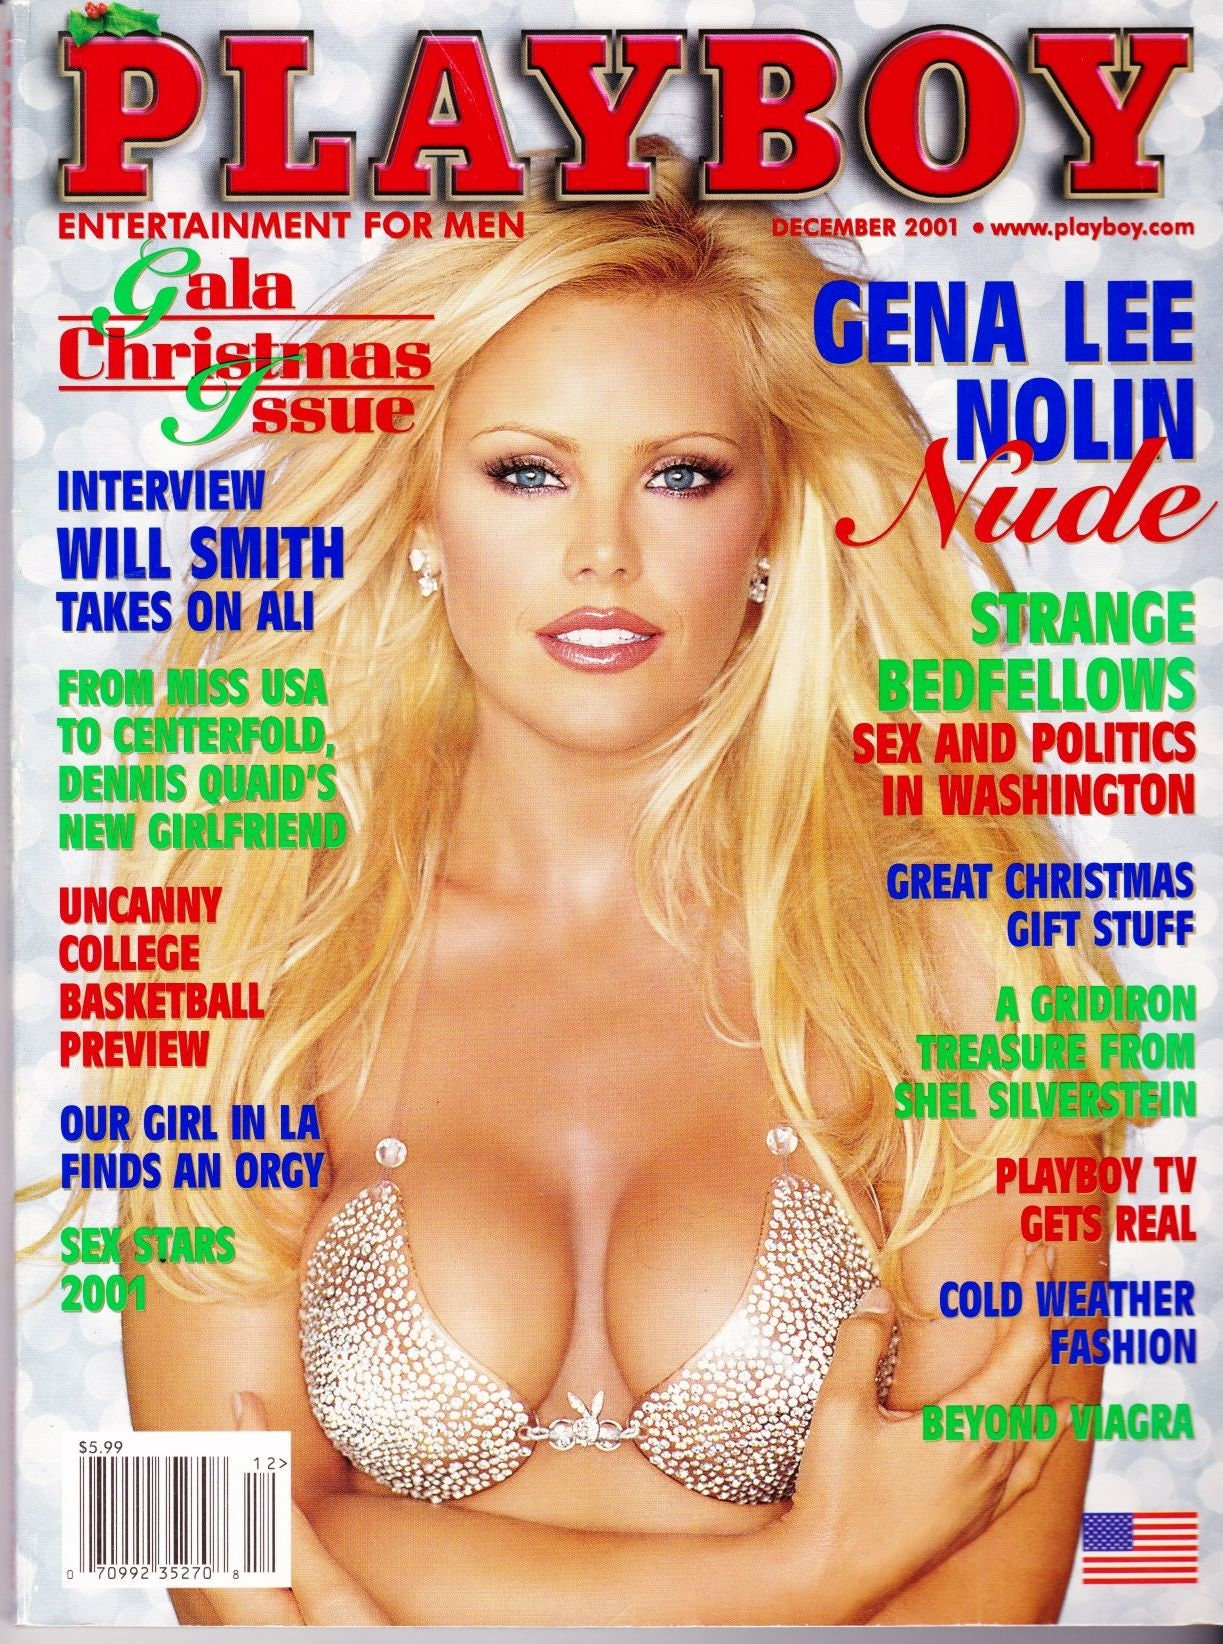 College Girls Nude Playboy playboy blonde. only the hottest playboy college girls at g4